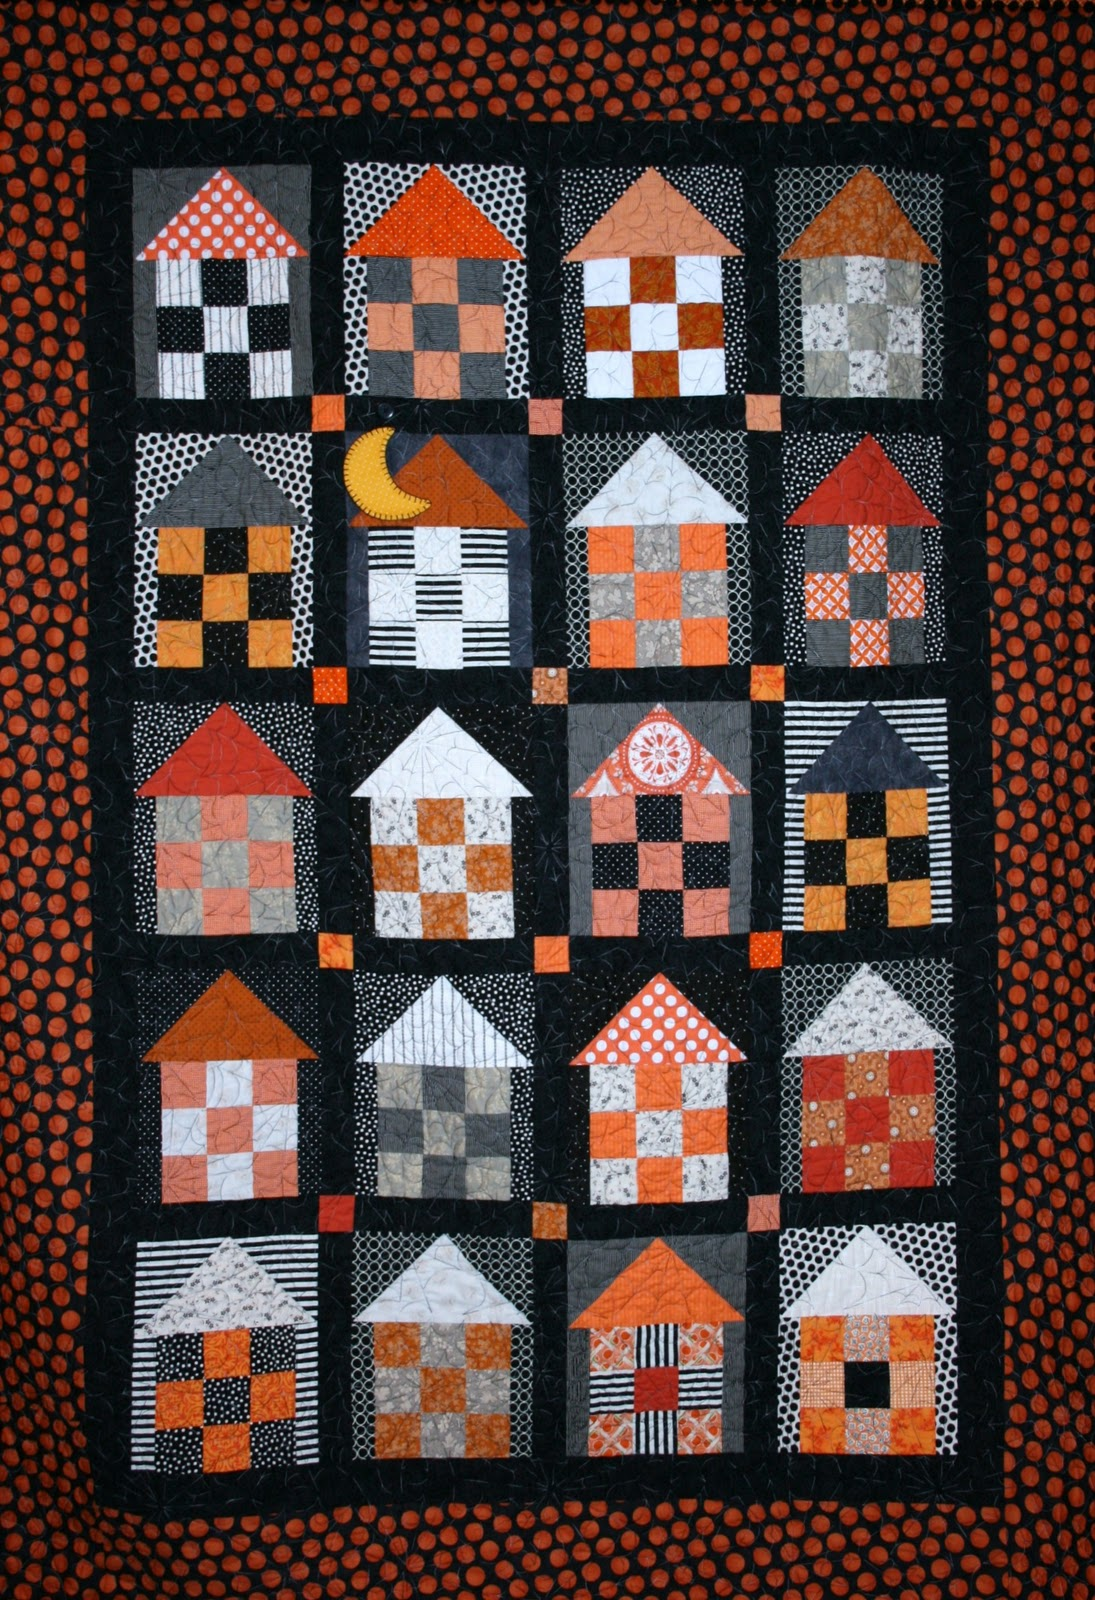 Quilt Inspiration: Fun Halloween quilts: Haunted Houses